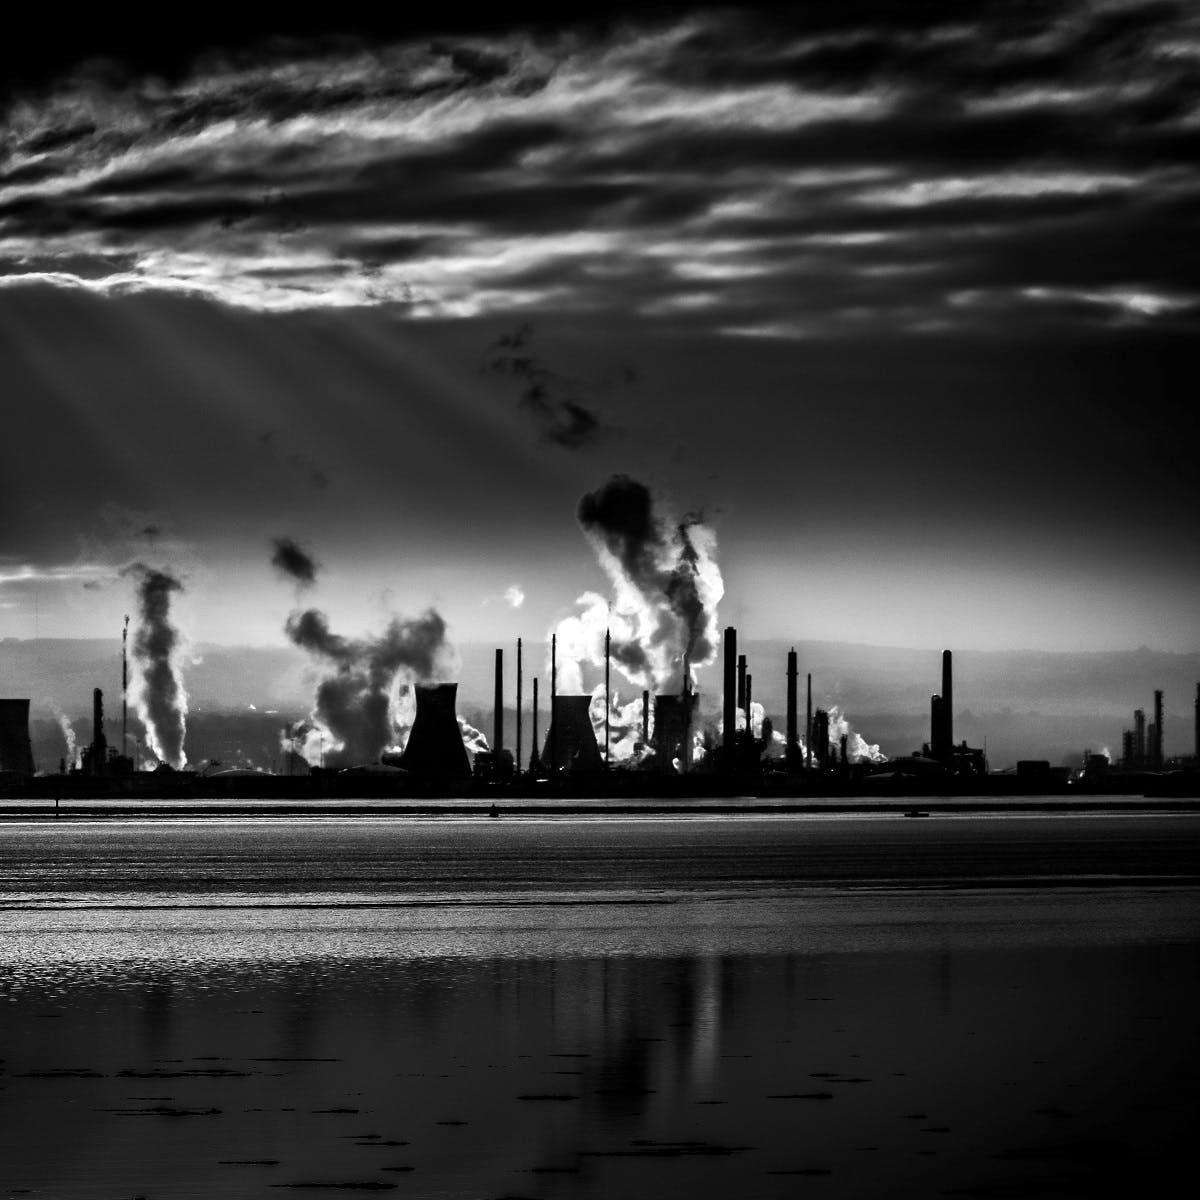 An industrial city on the horizon with a number of factories pumping pollutants into the atmosphere